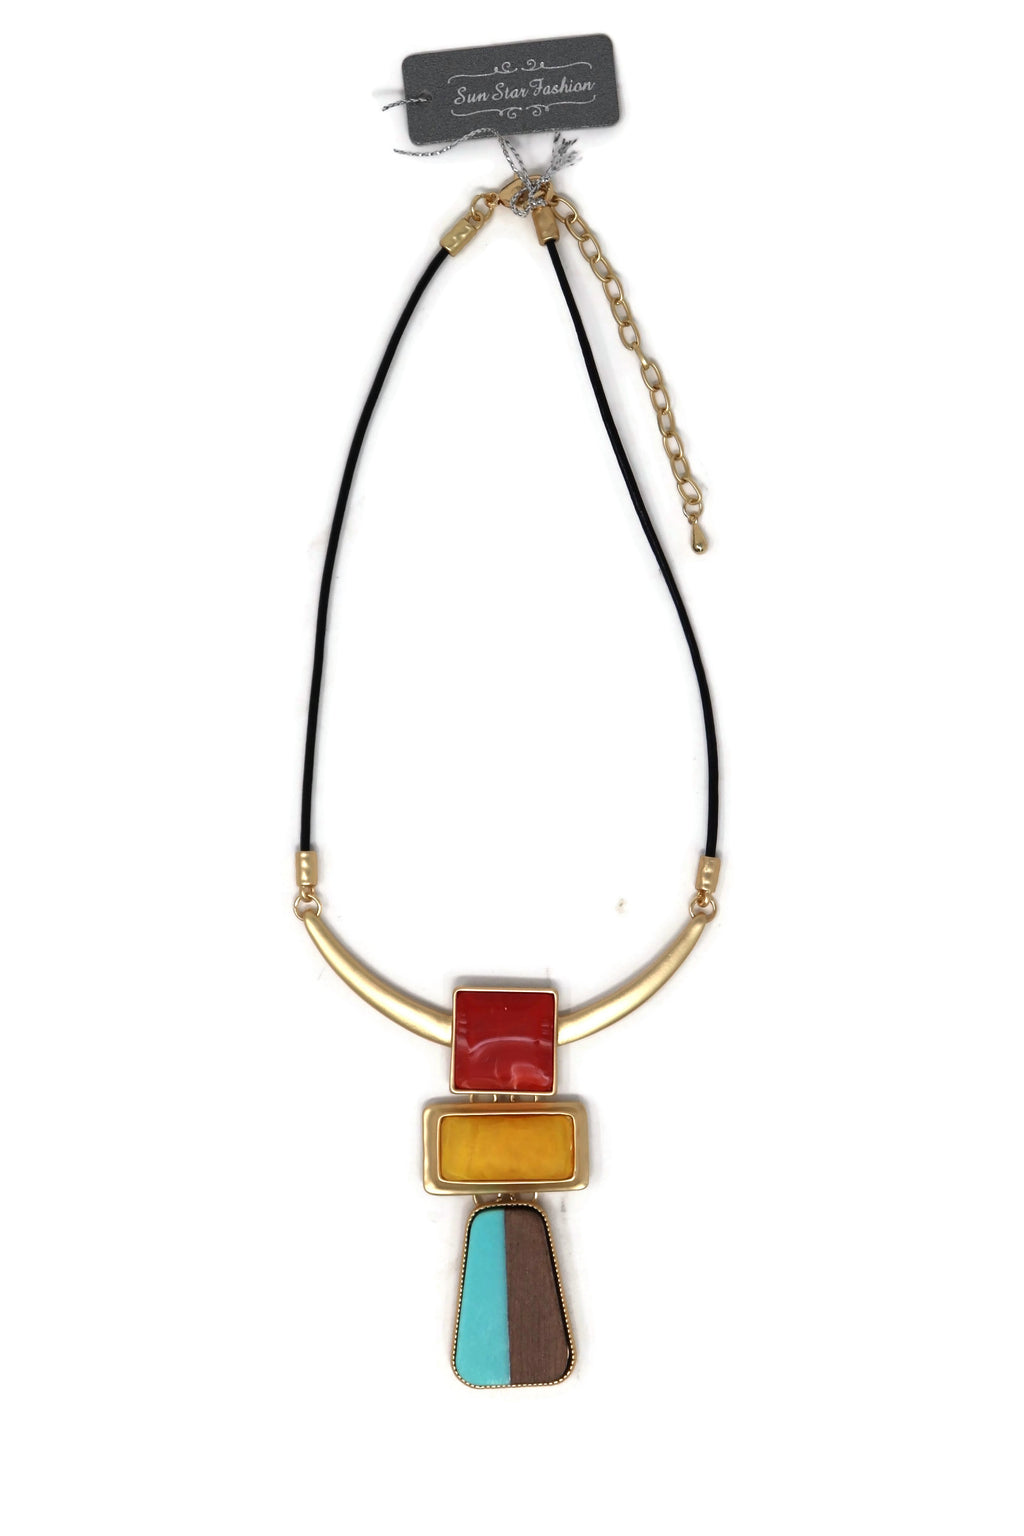 Leather short necklaces with modern Egypt style